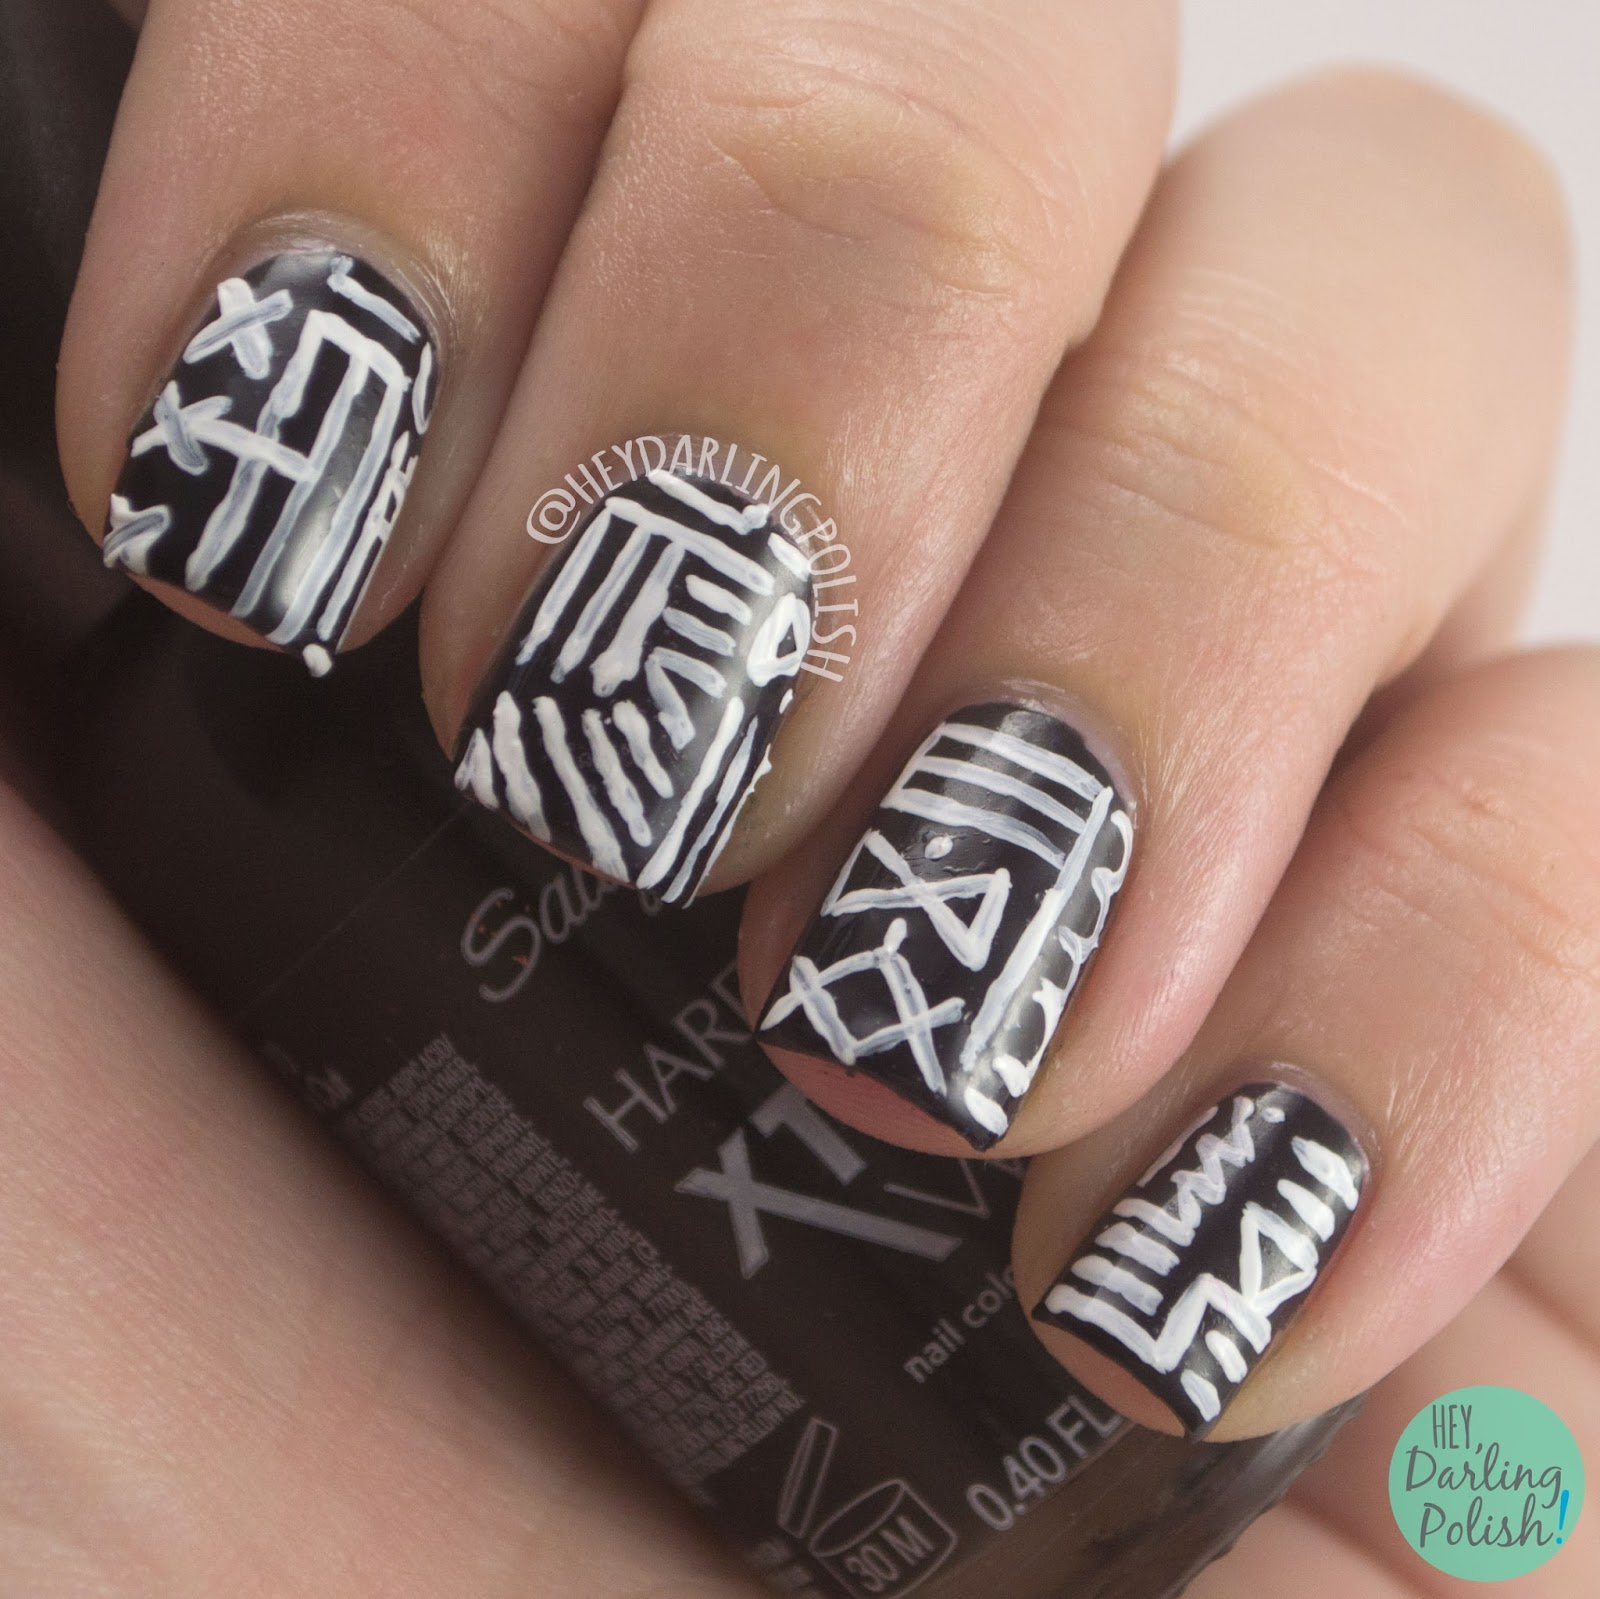 nails, nail art, nail polish, black, white, black & white, tribal, hey darling polish, 31 day challenge, 31dc2014